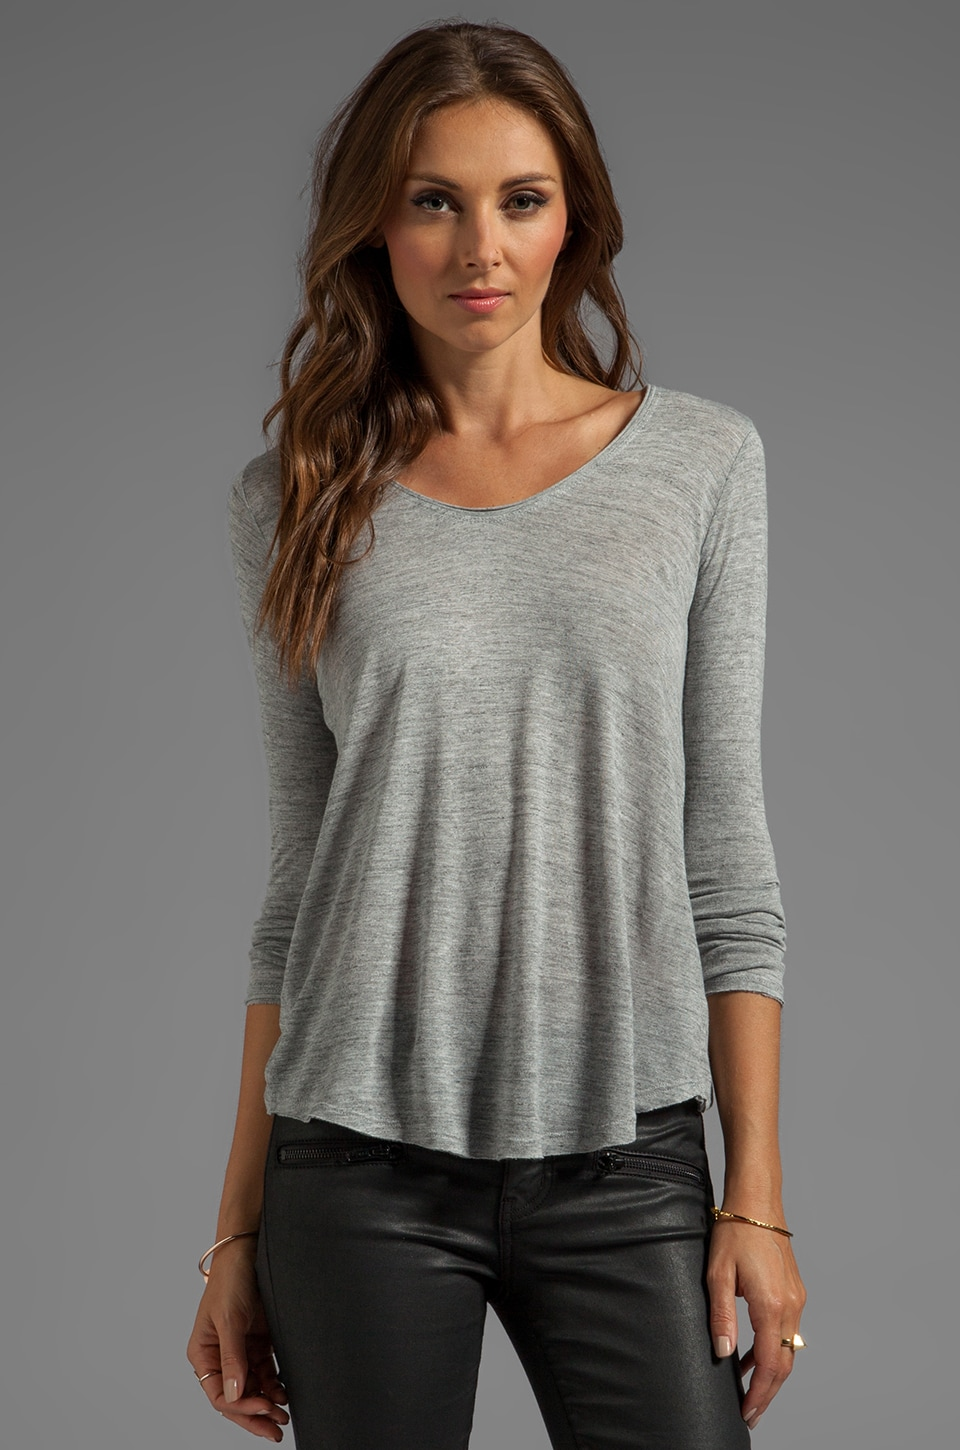 Vince Long Sleeve Vee in Heather Grey